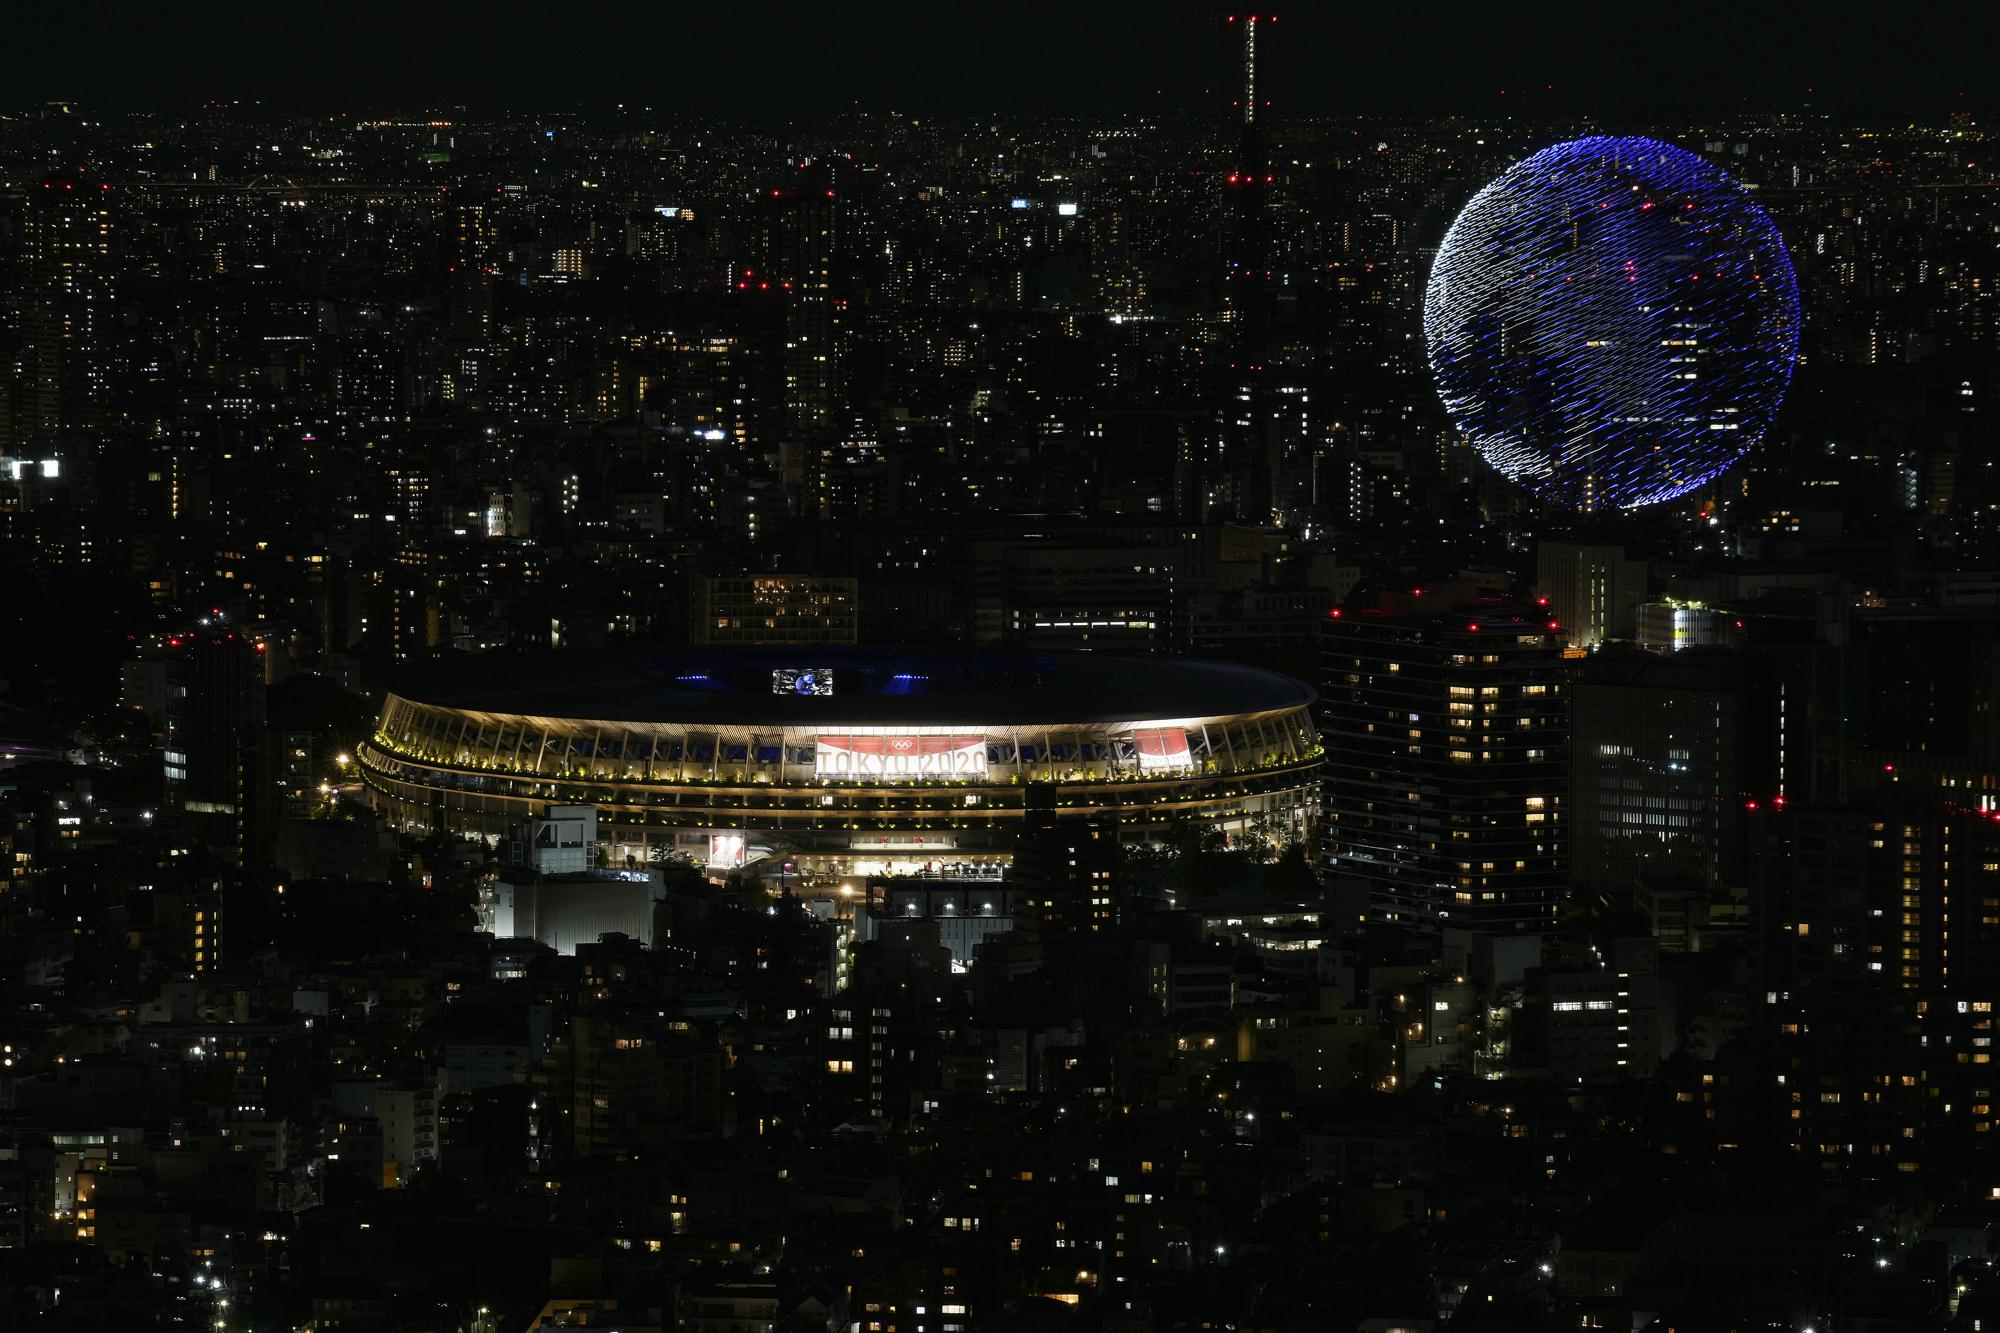 Drones fly over the National Stadium during the opening ceremony of 2020 Tokyo Olympics is seen from Shibuya Sky observation deck Friday, July 23, 2021, in Tokyo, Japan. (AP Photo/Eugene Hoshiko)